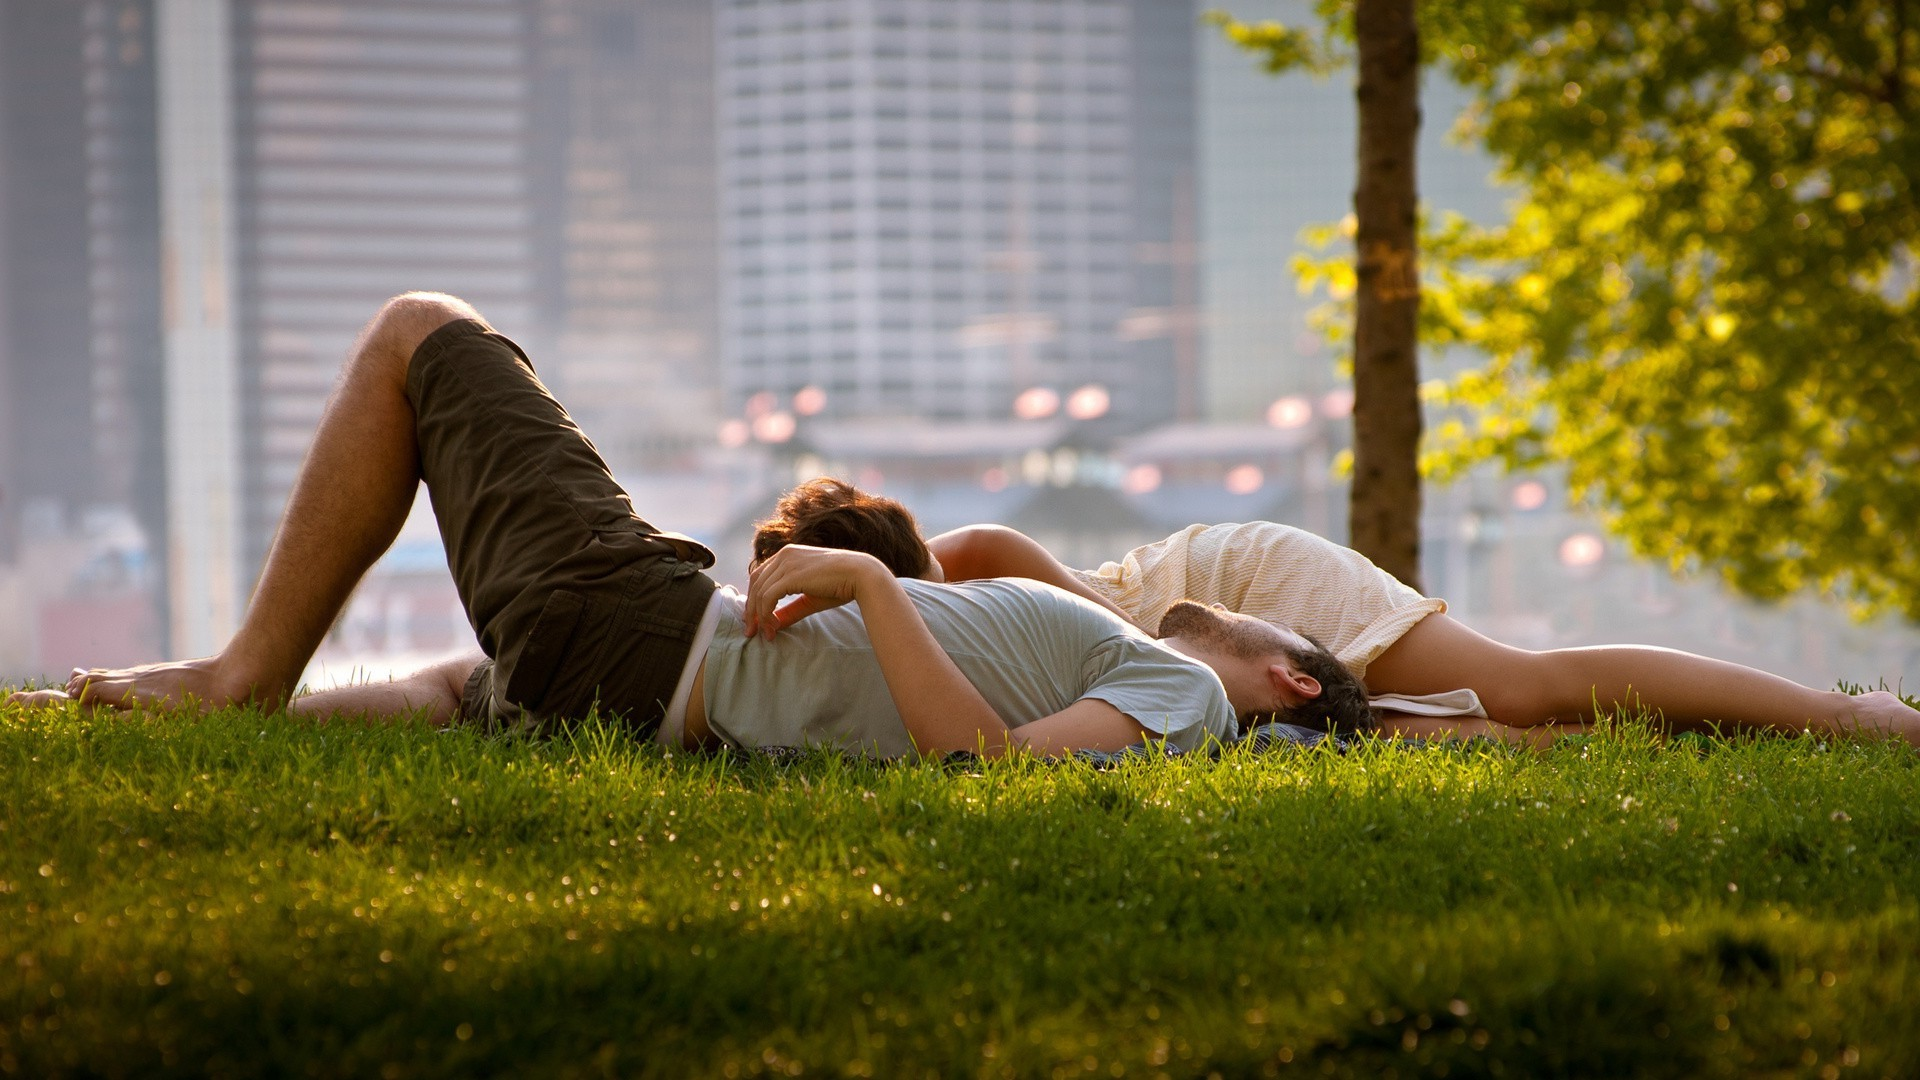 aiuto, c'è qualcuno che ne capisce di frutteto? Couple-in-love-lying-on-the-grass-in-the-park-of-a-big-city